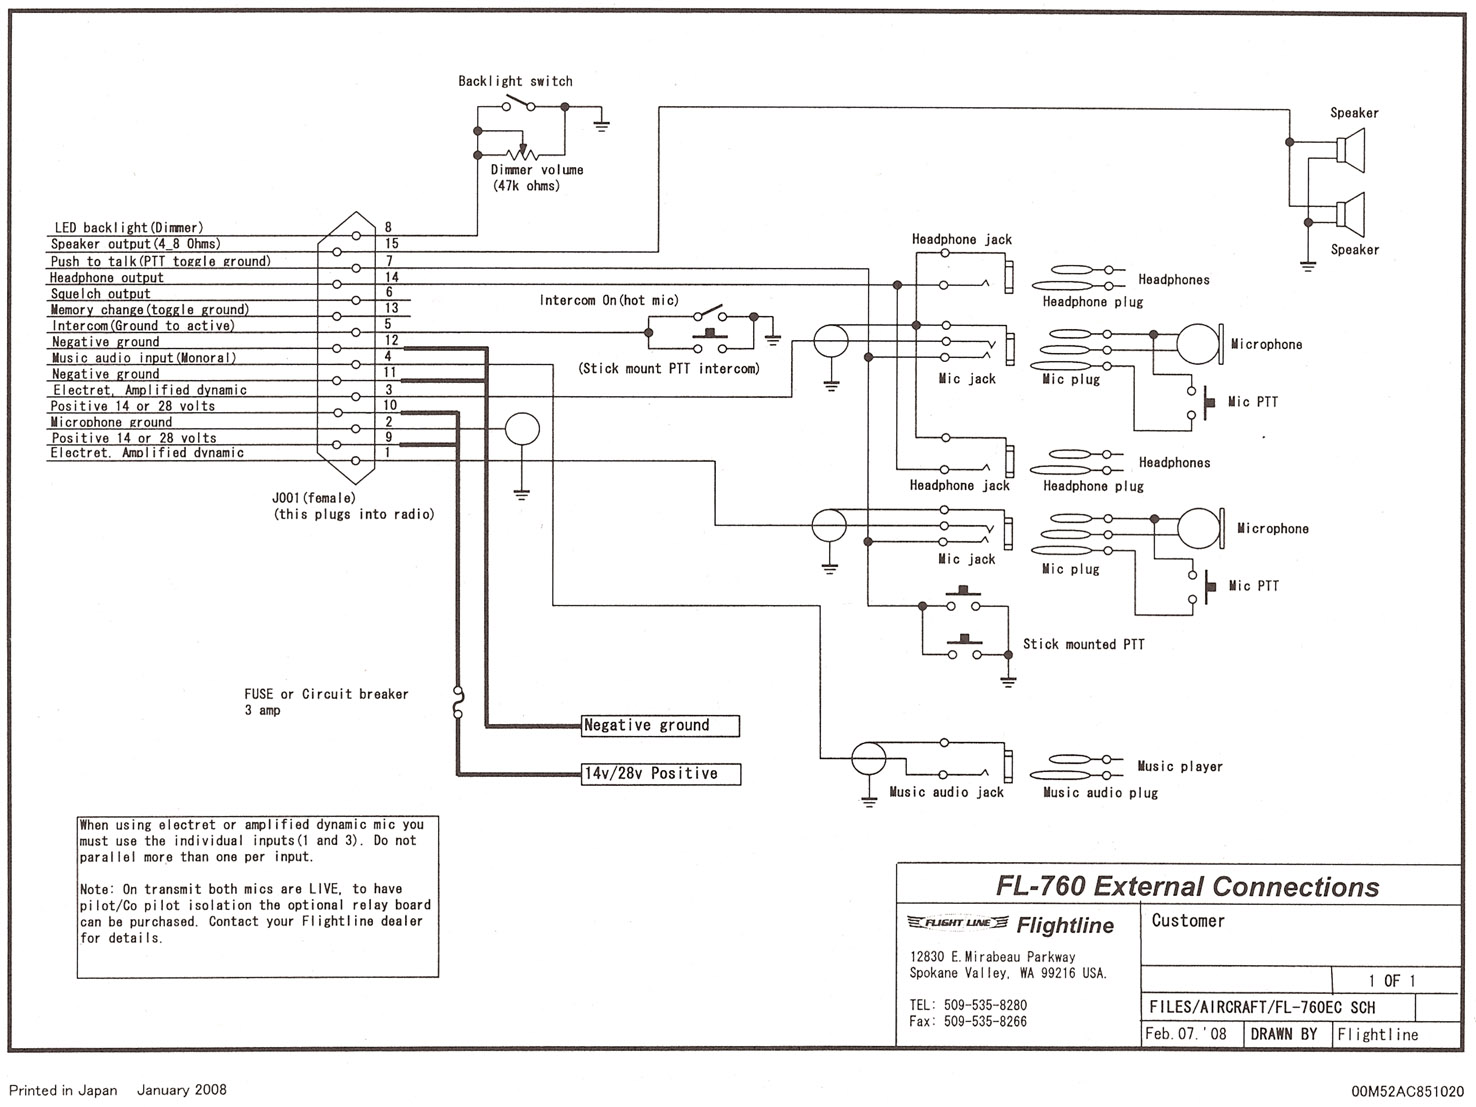 aerospace wiring diagram keh 2600 speaker wiring diagram cumulus soaring, inc.- flightline